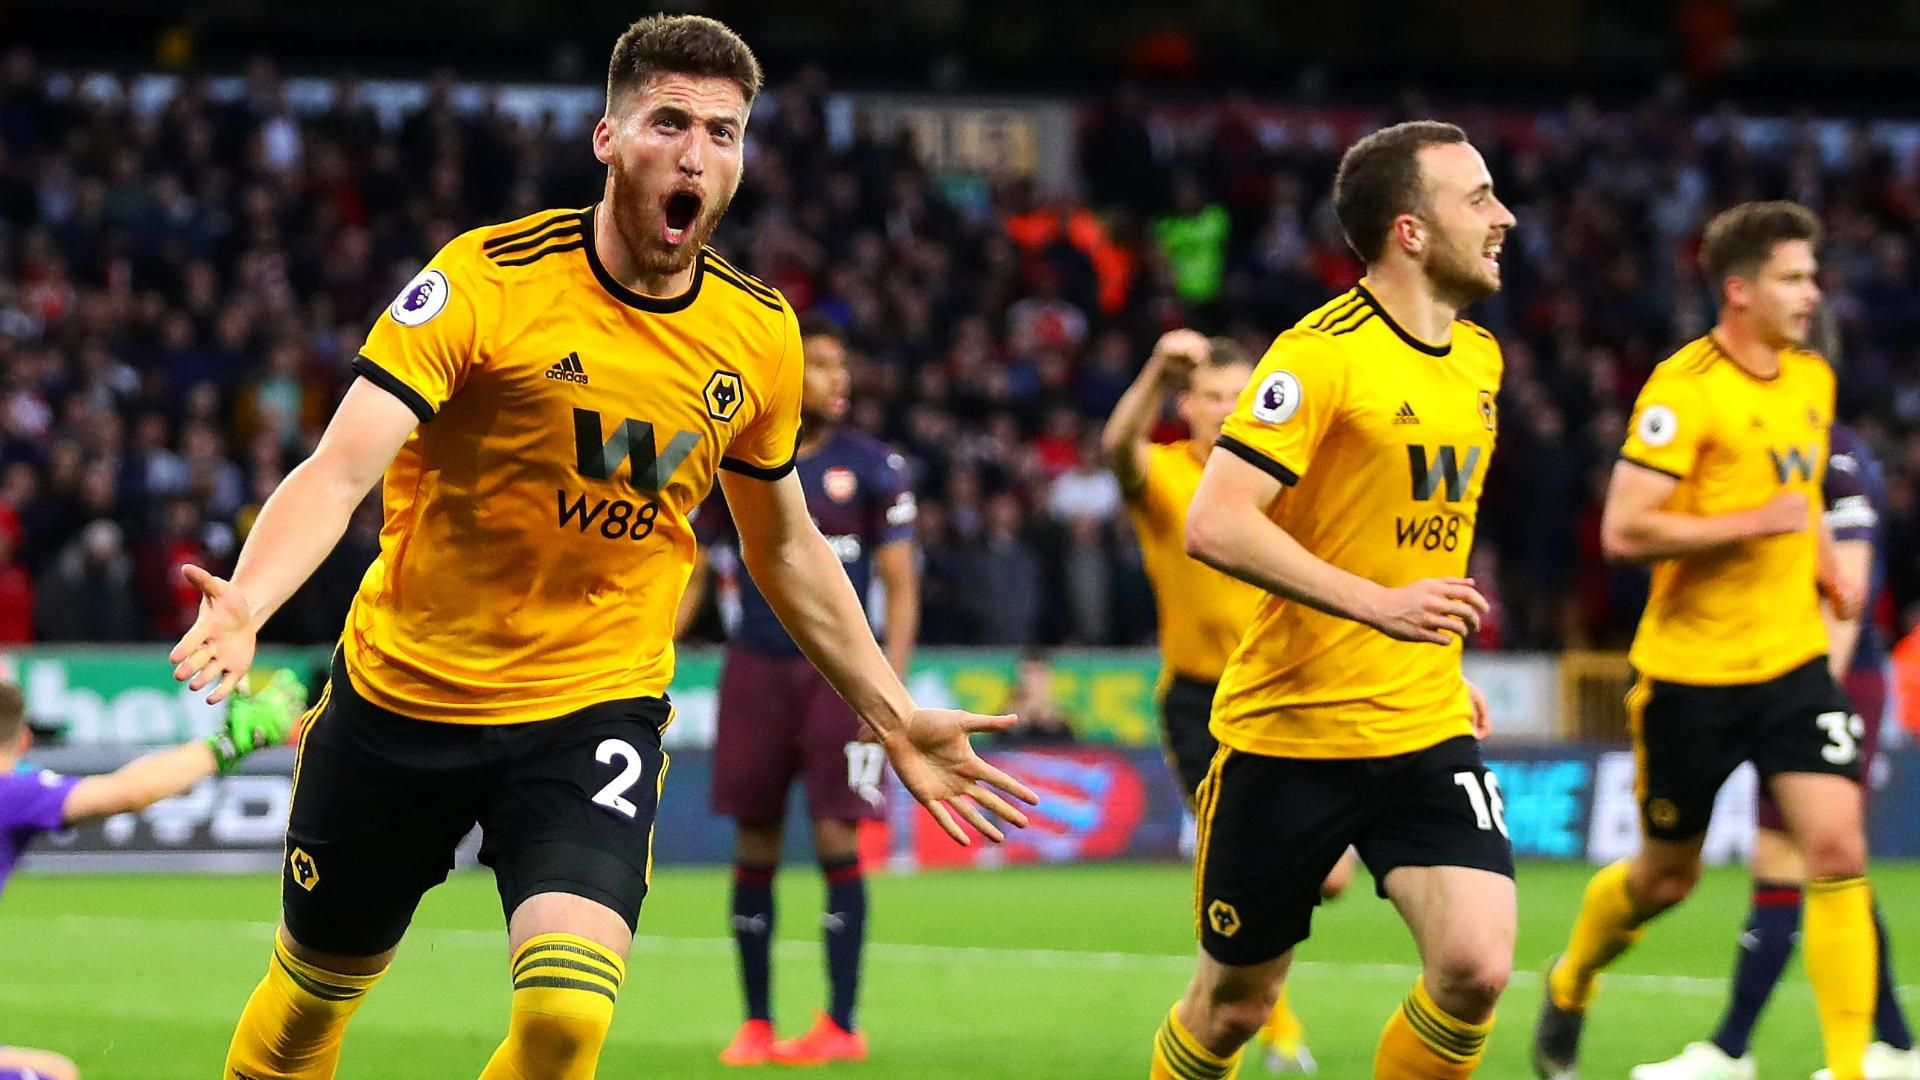 Doherty adds to Arsenal's misery with a 2nd for Wolves